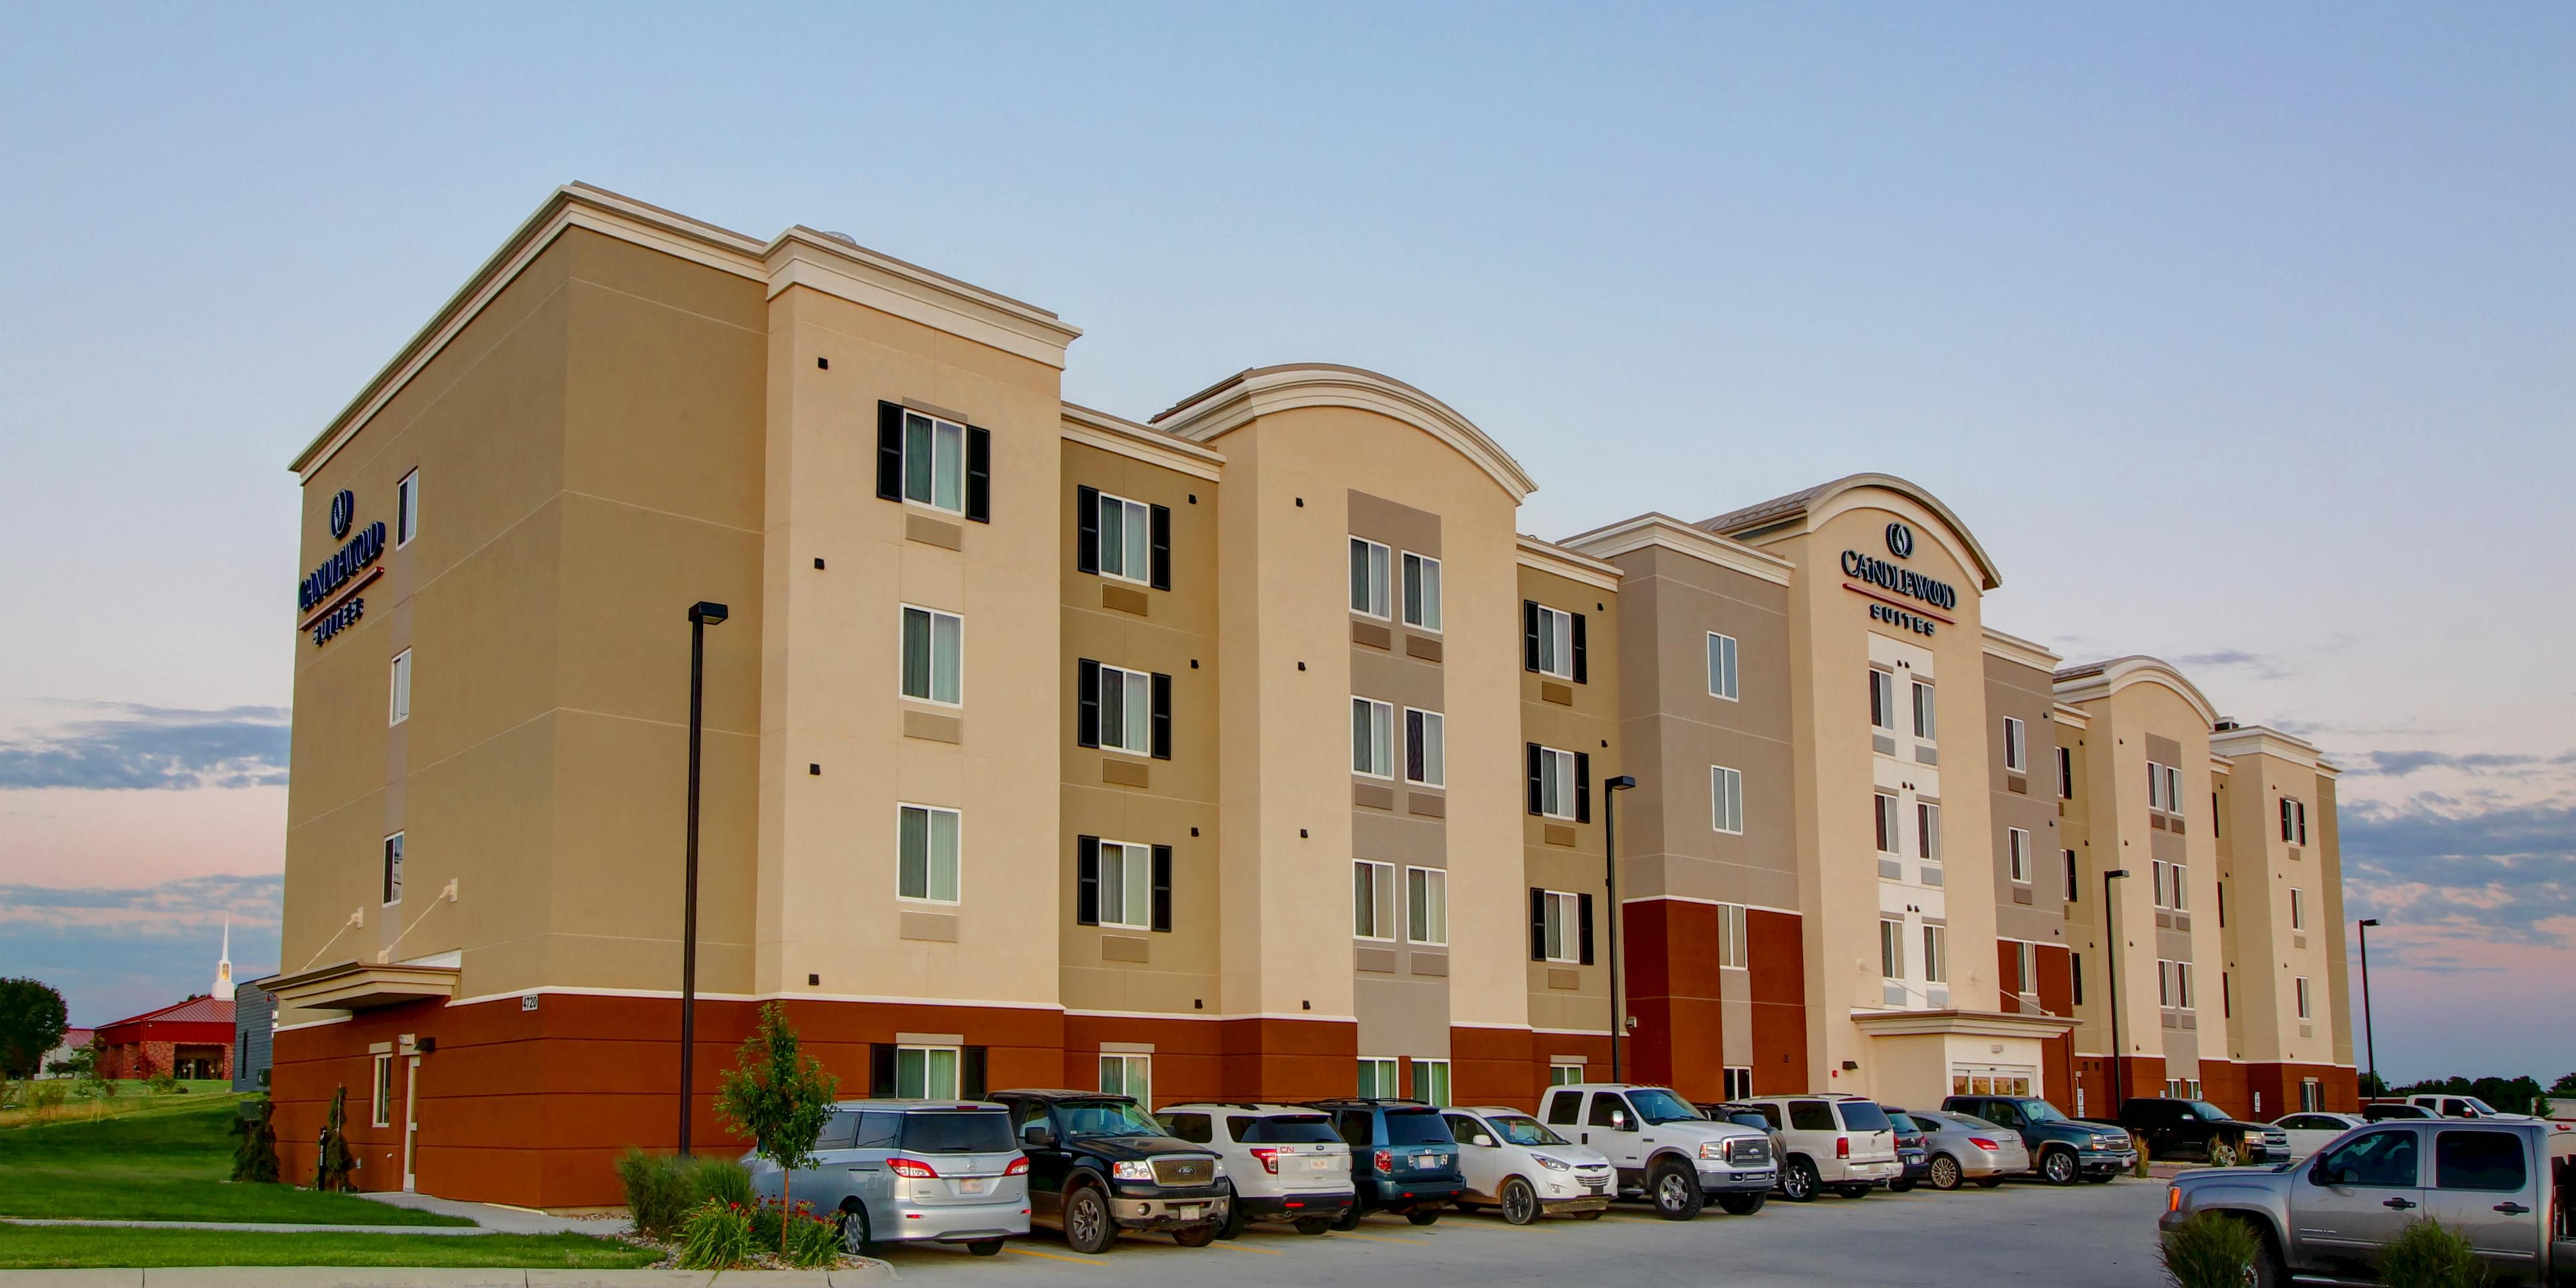 Sioux City Hotels: Candlewood Suites Sioux City - Southern Hills ...